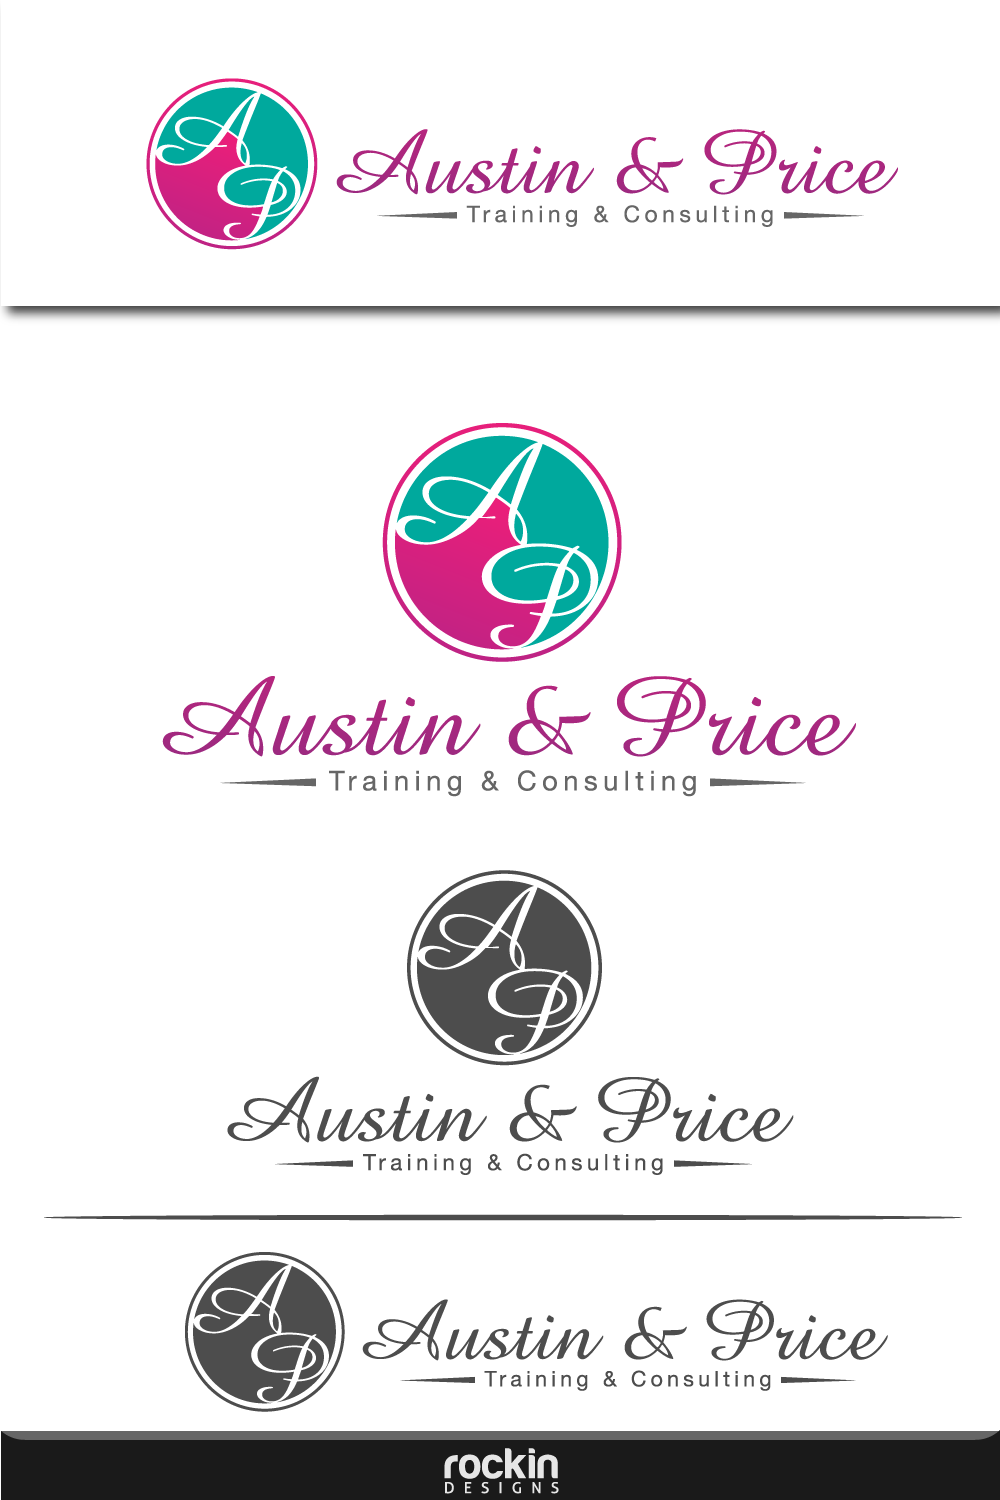 Logo Design by rockin - Entry No. 45 in the Logo Design Contest Artistic Logo Design for Austin Price Advisory.